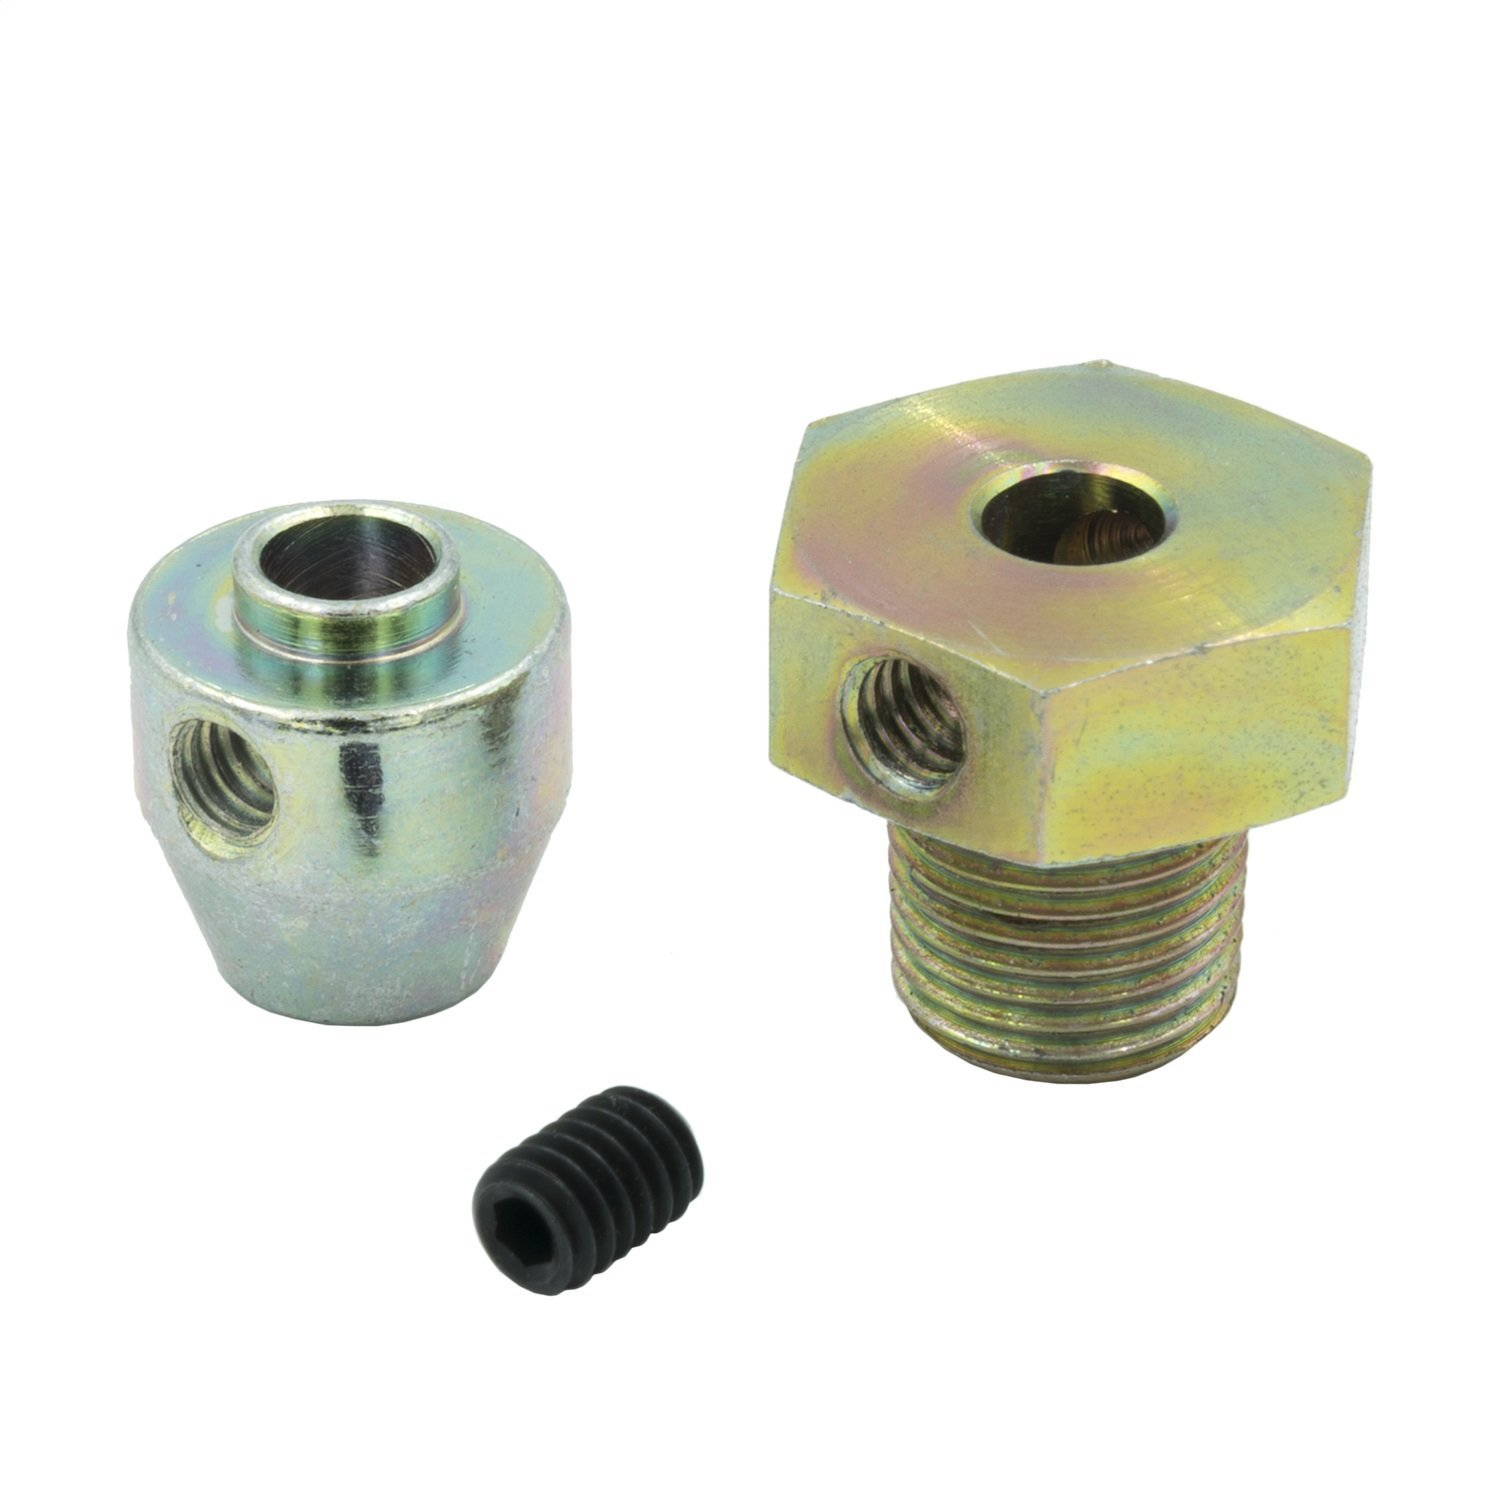 FITTING, THERMOCOUPLE, INCL SET SCREW, 1/8NPT MALE, STEEL